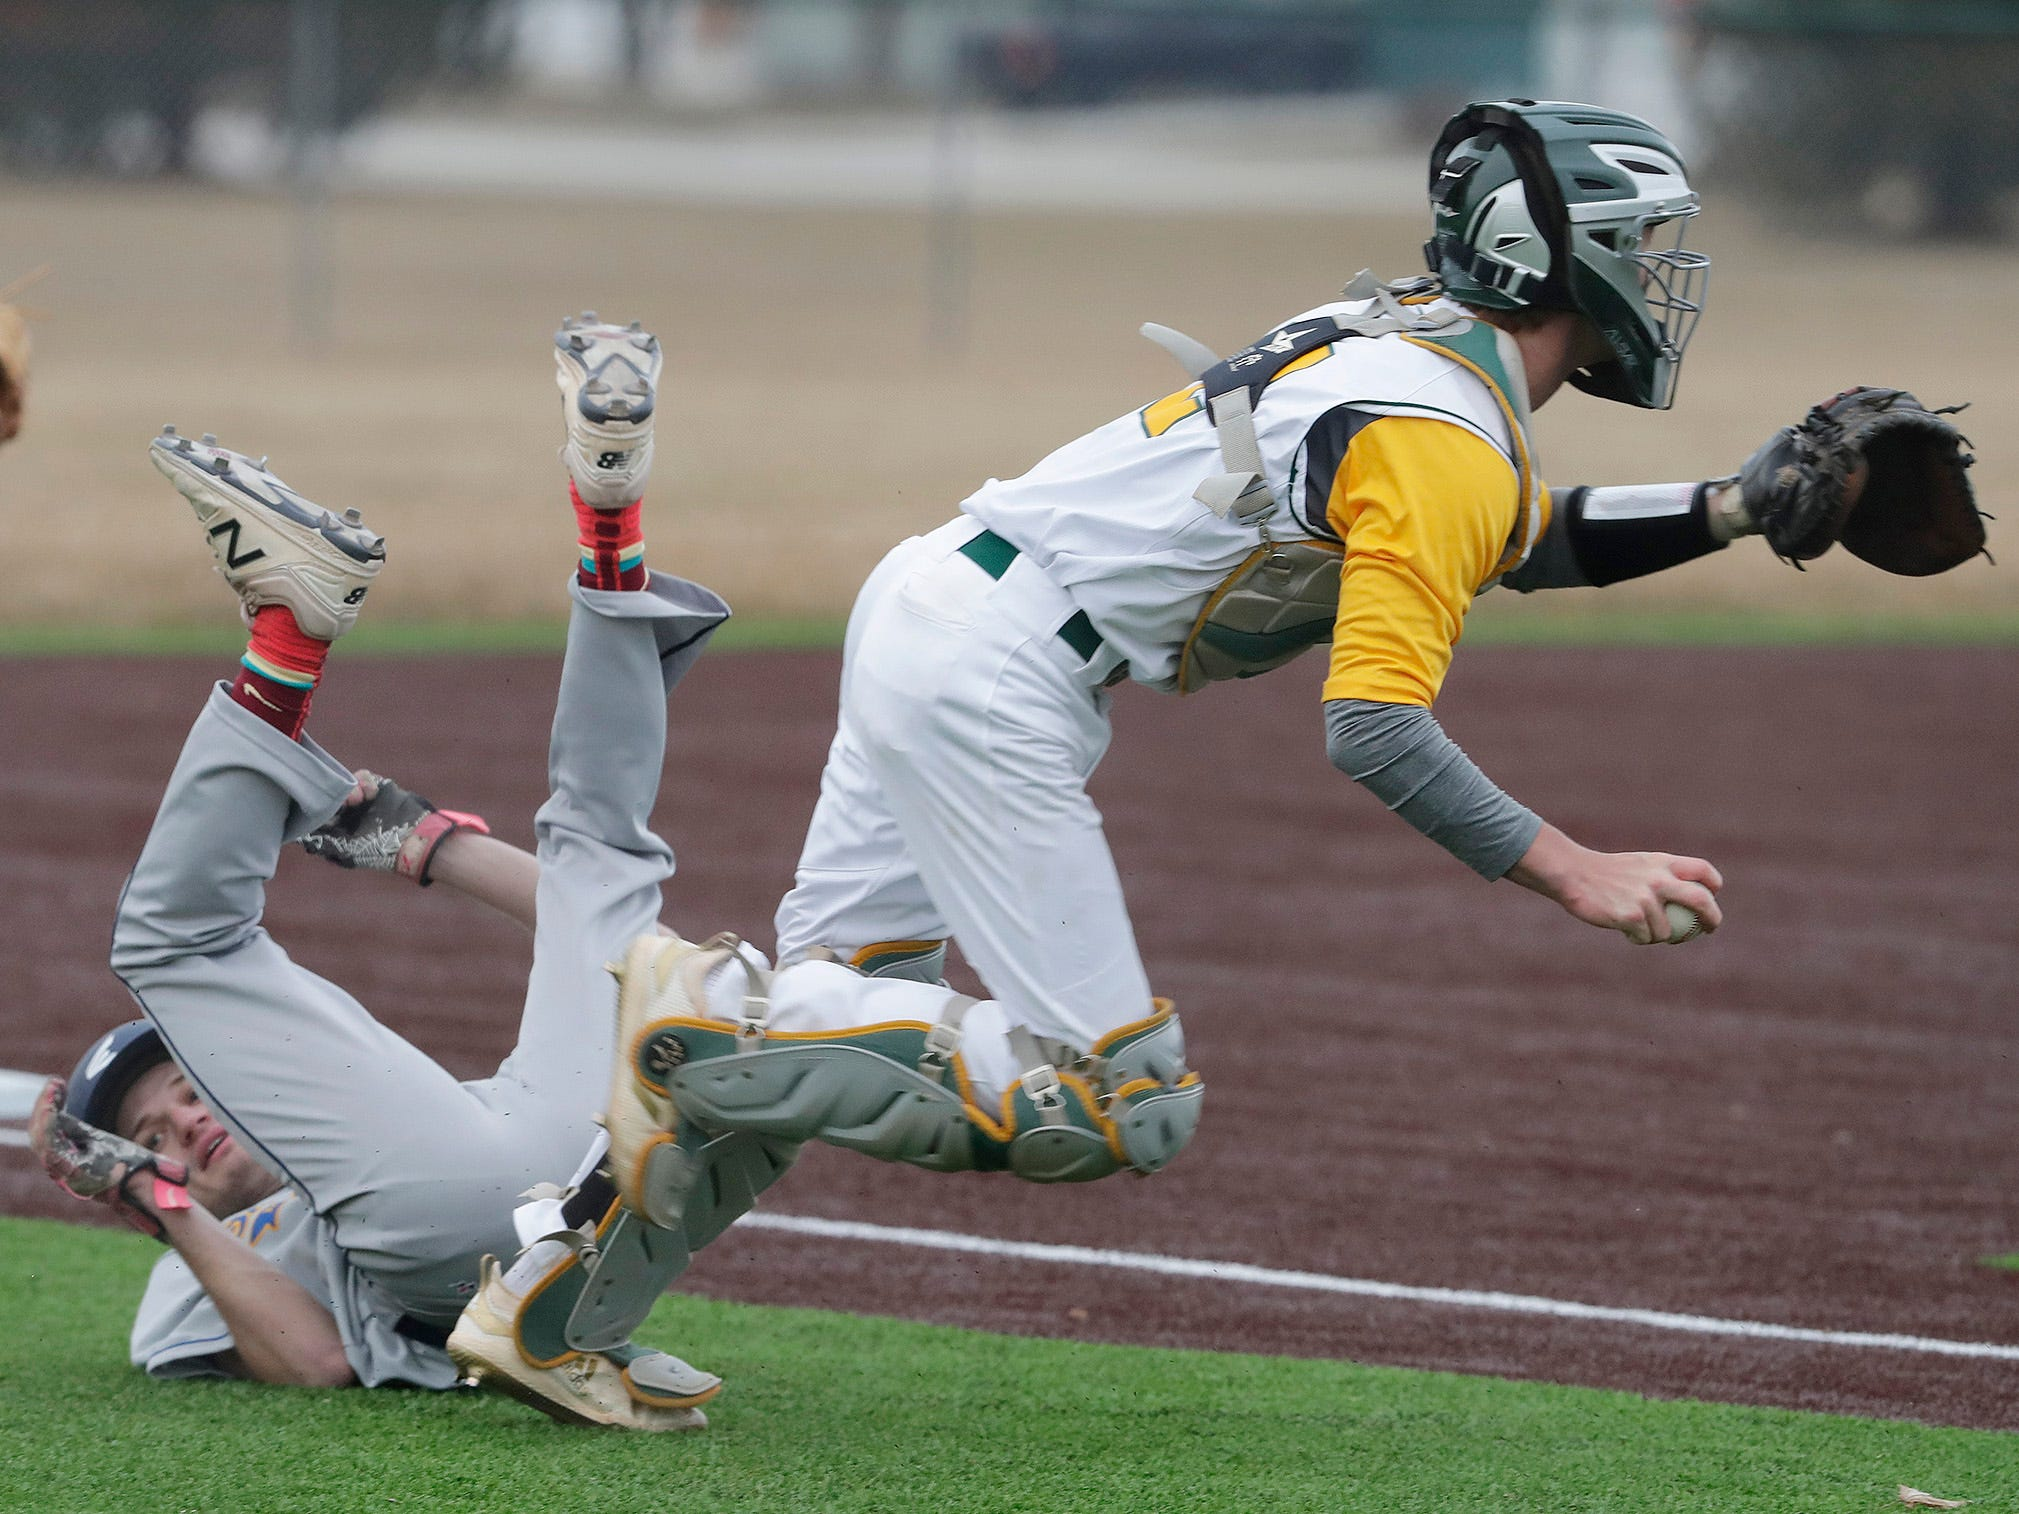 Sheboygan North's Ethan Scherg, left, rolls after being tagged out by Ashwaubenon's Brady Wittig, right, Thursday, April 4, 2019, in Sheboygan, Wis.